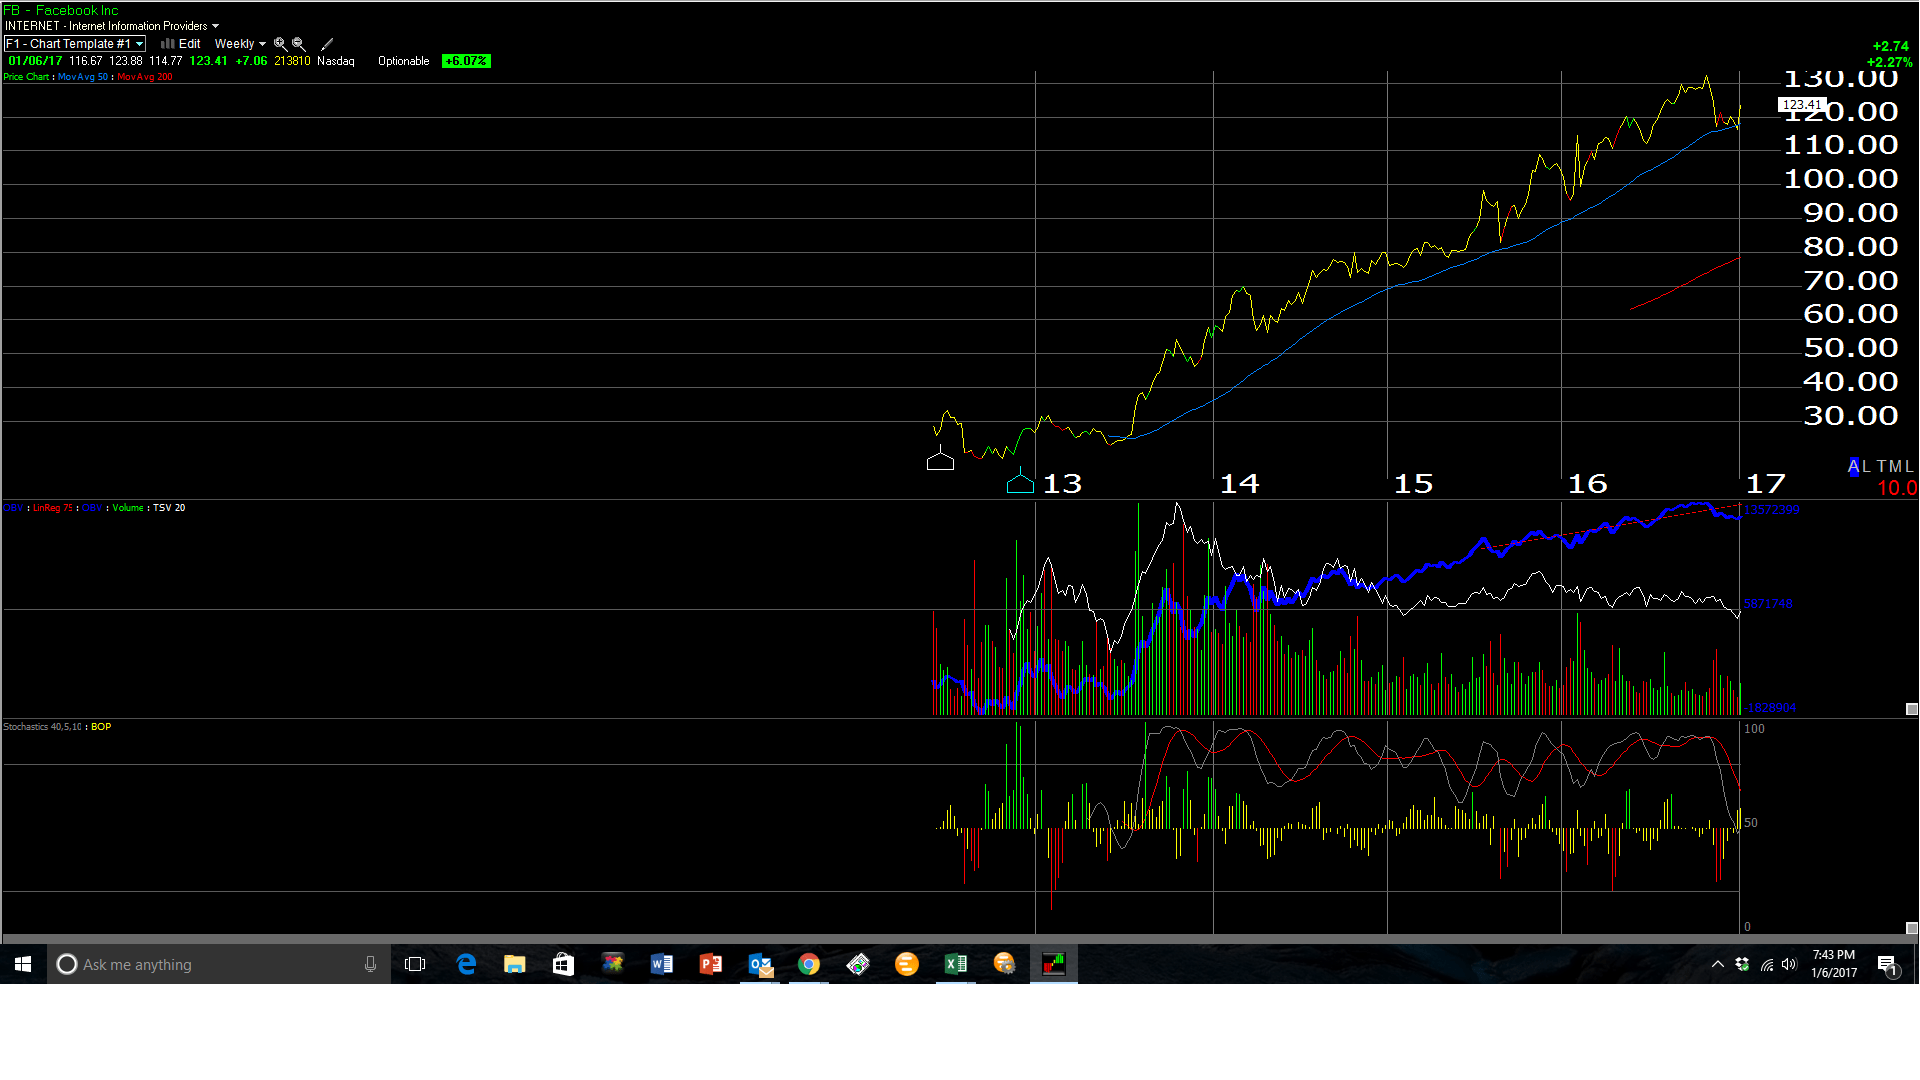 Here Is A Weekly Chart Of Facebook As Of The Close Of Trading 1/6/2017.